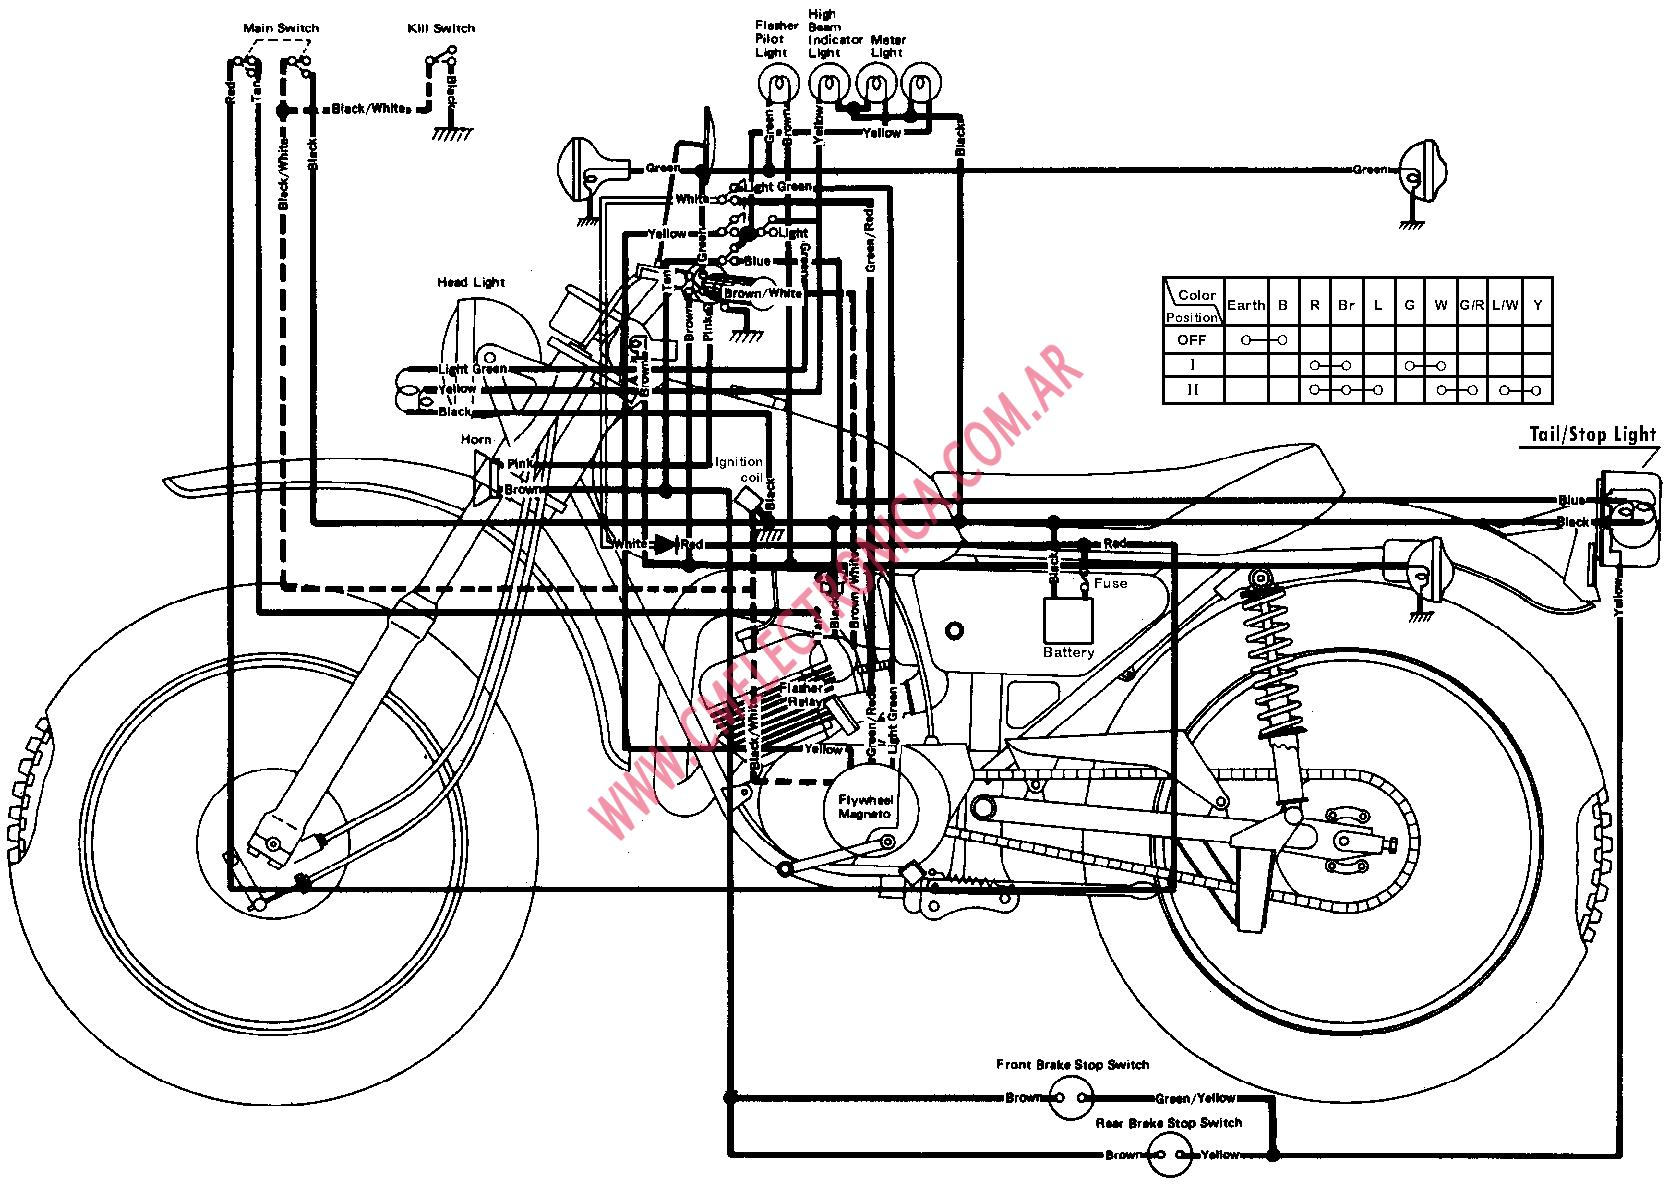 Yamaha Dt 250 Wiring Diagram : 28 Wiring Diagram Images